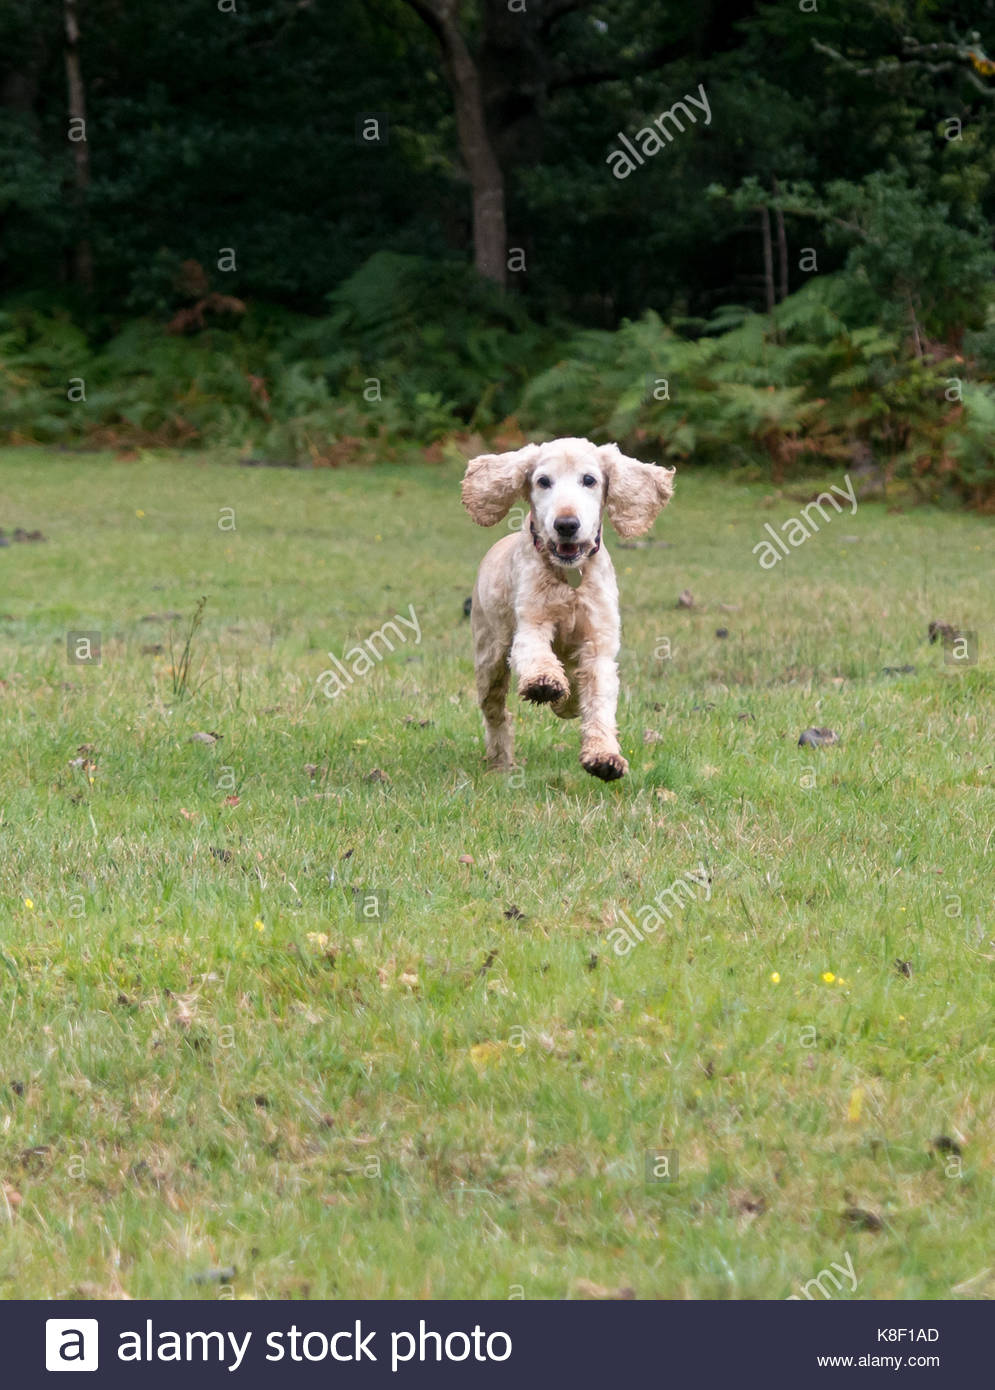 Golden English Cocker Spaniel dog running towards the camera with its floppy ears bouncing up. - Stock Image